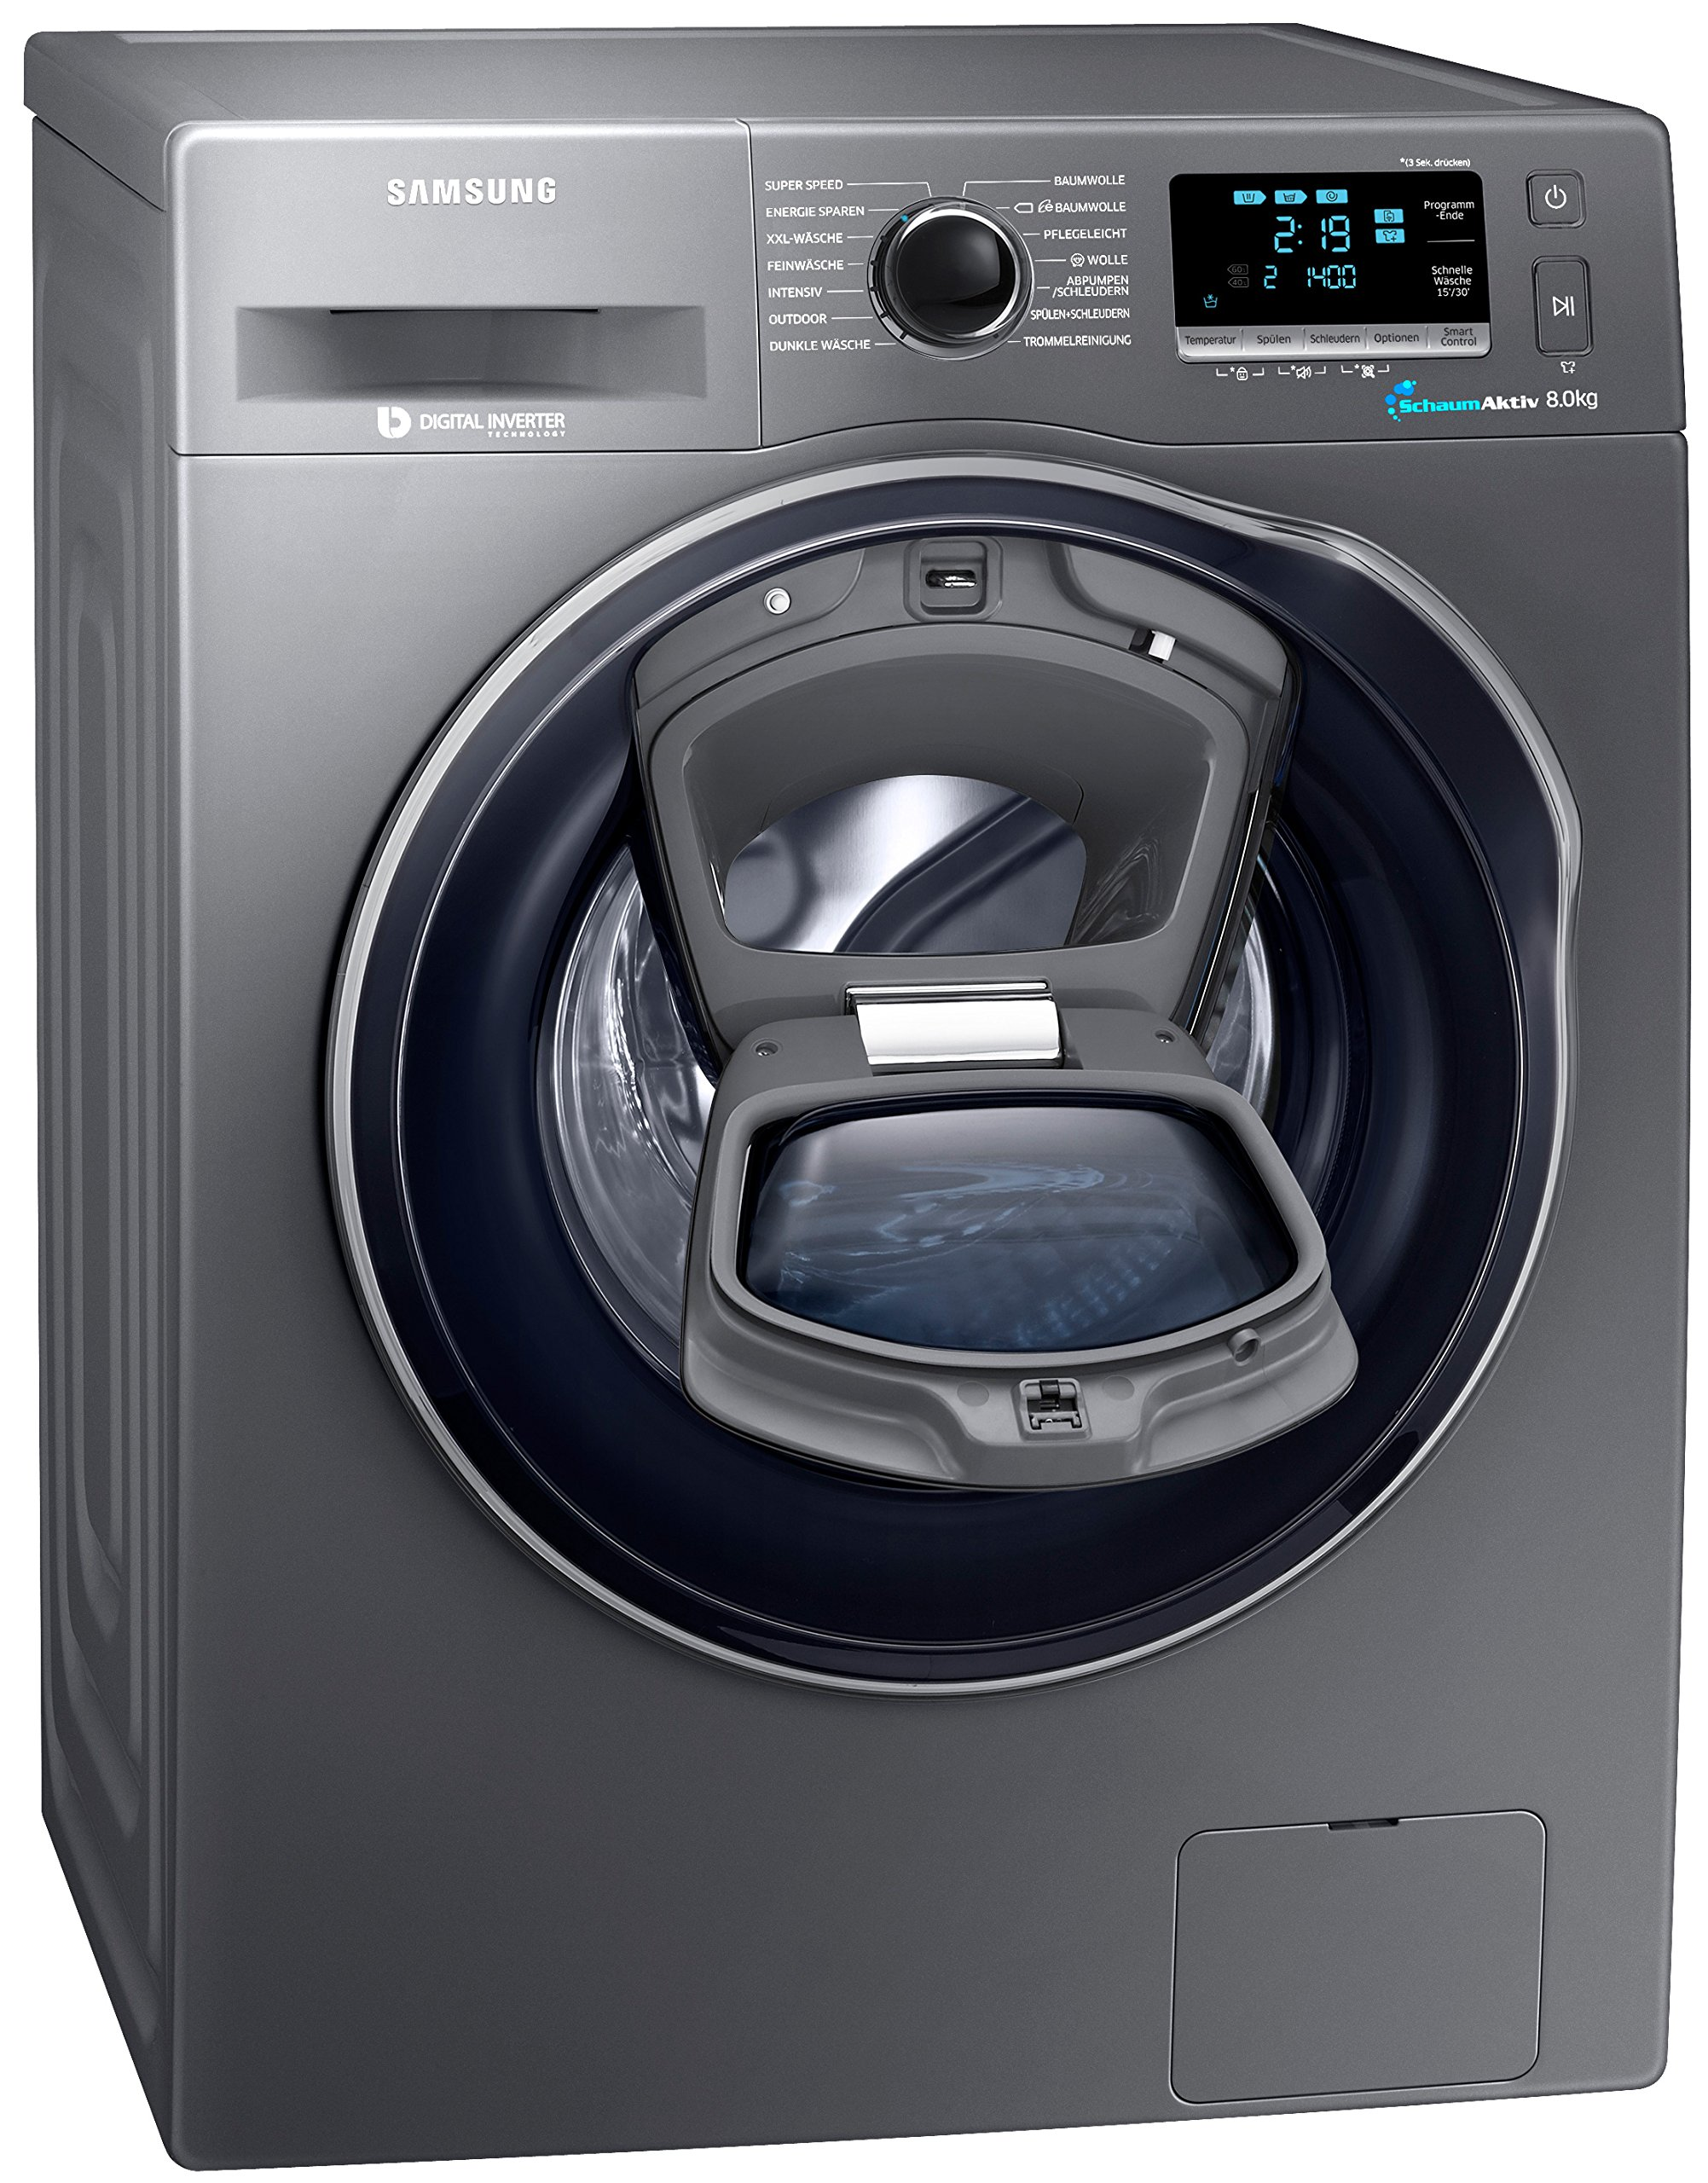 Samsung-WW80K6404QEG-Waschmaschine-FLA-116-kWhJahr-1400-UpM-8-kgWiFi-Smart-ControlSuper-Speed-Wash-Digital-Inverter-Motor